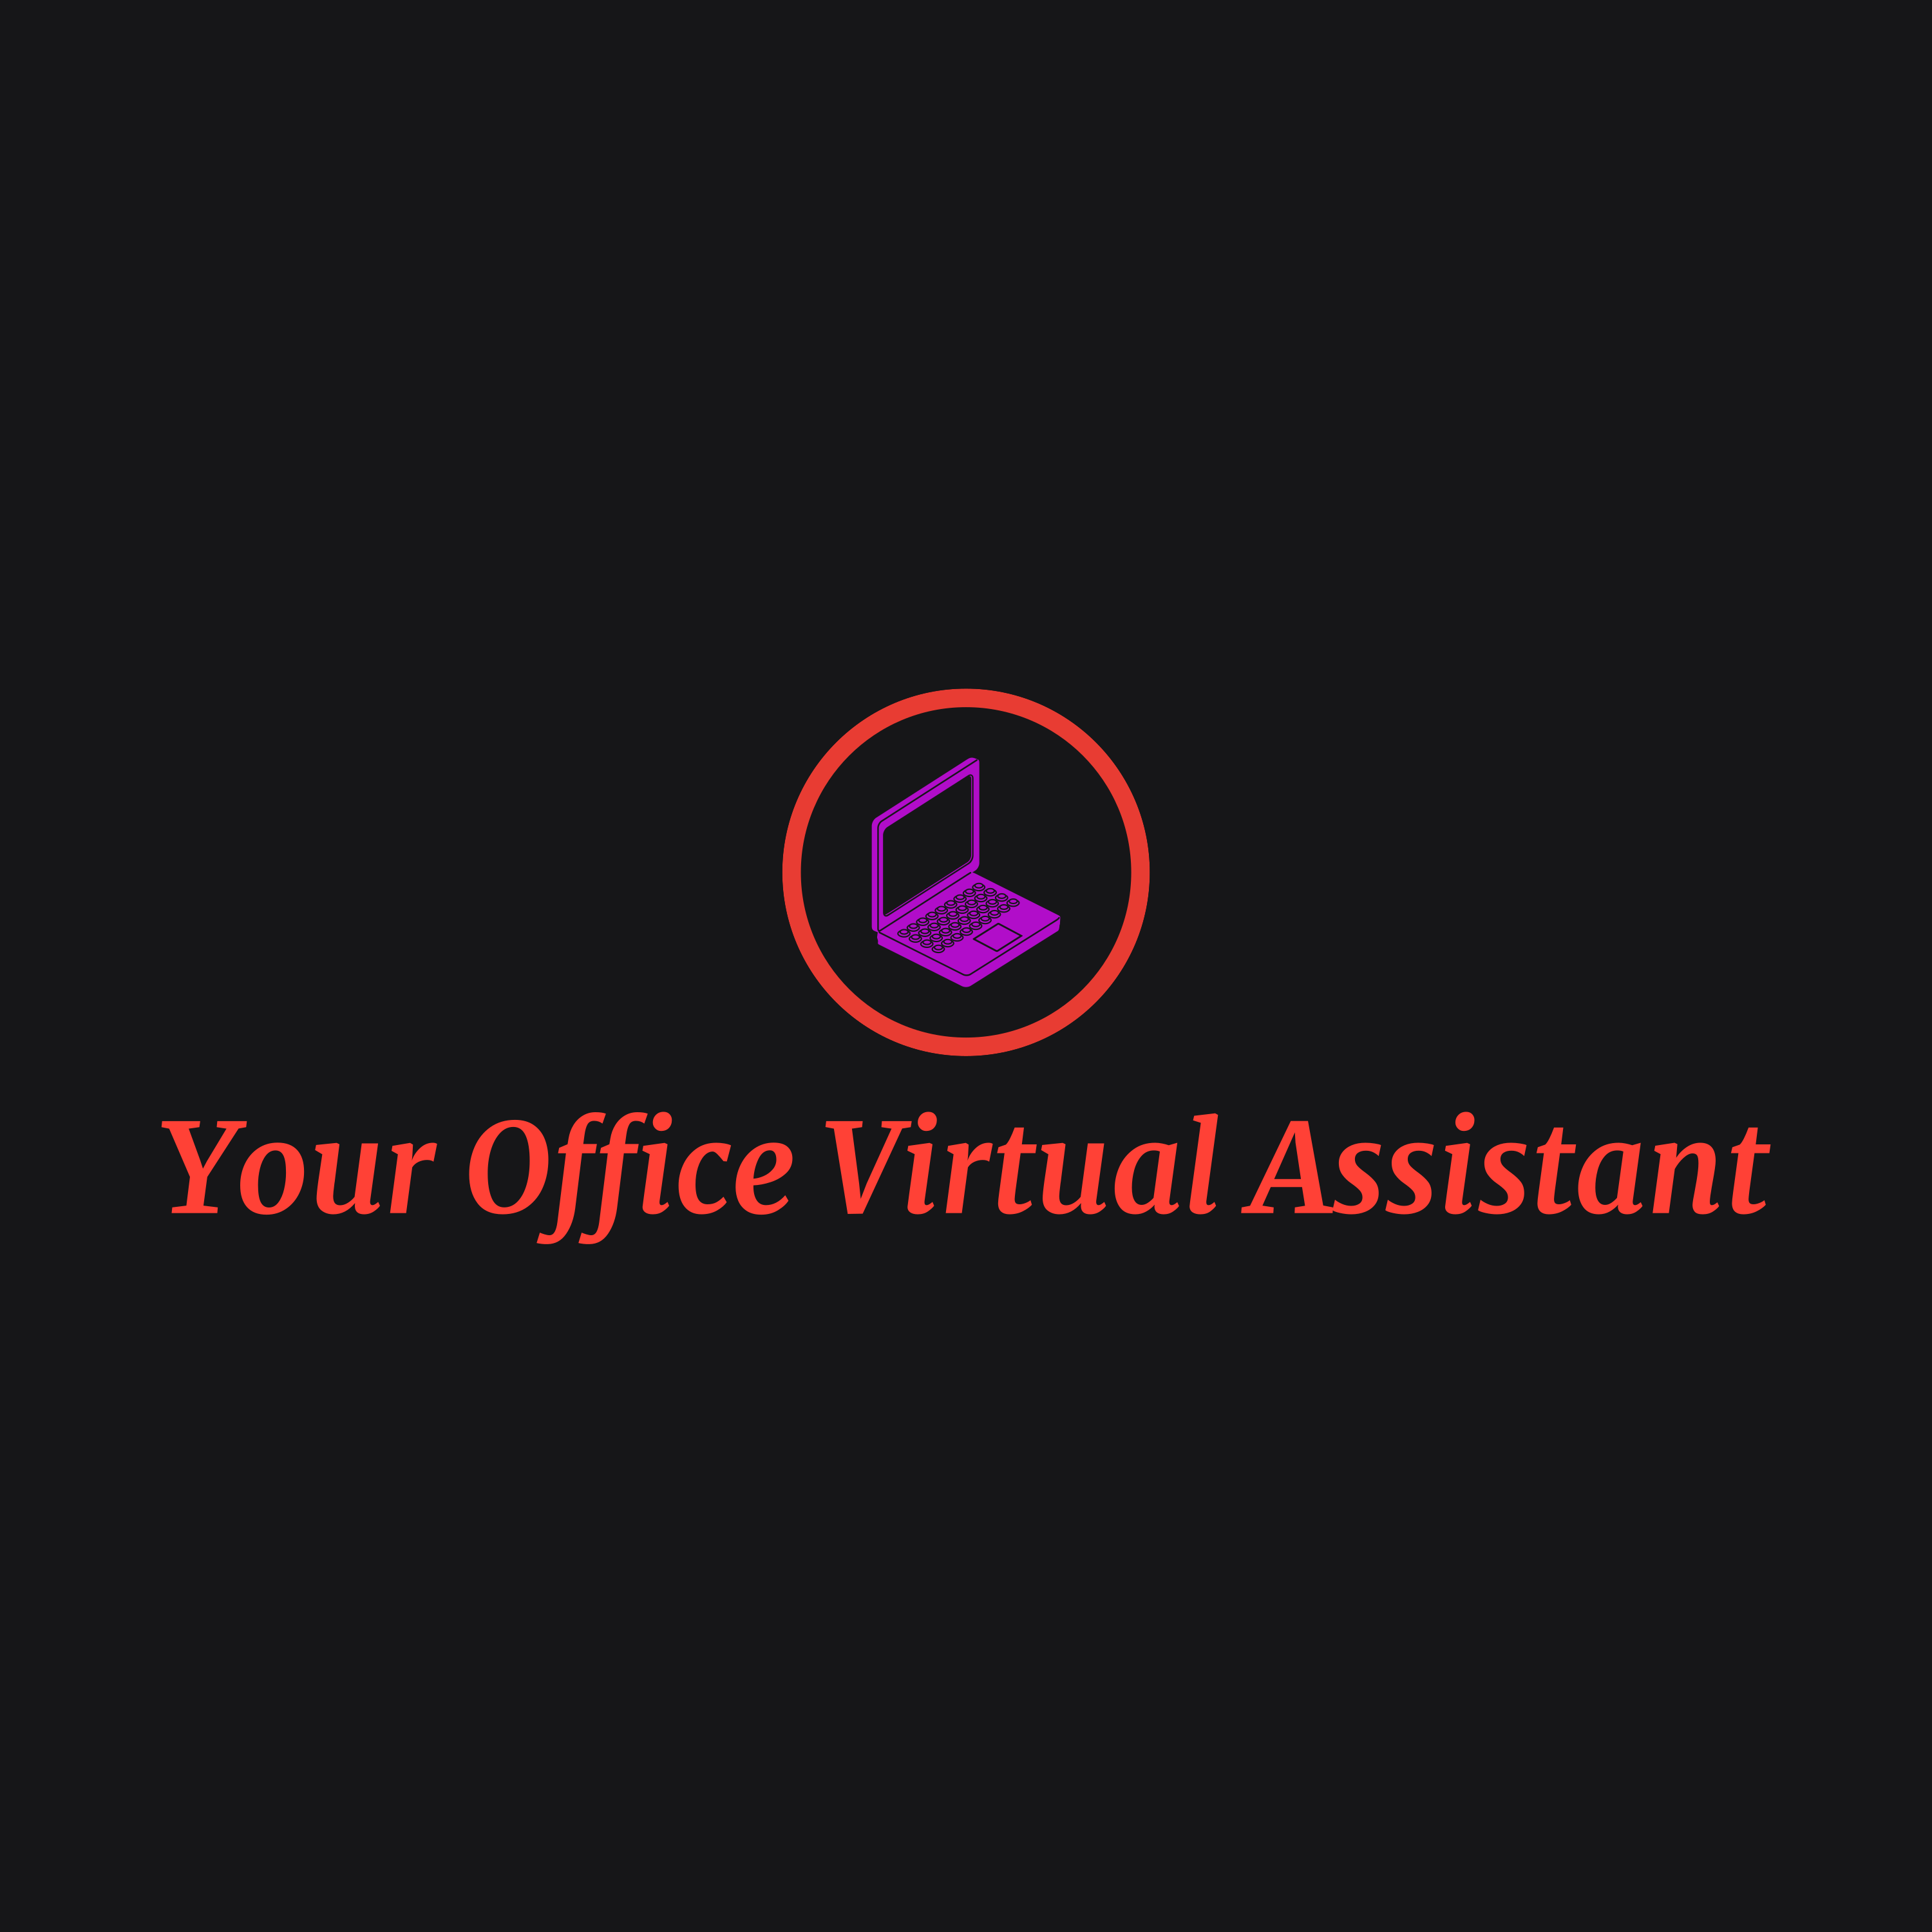 Your Office Virtual Assistant